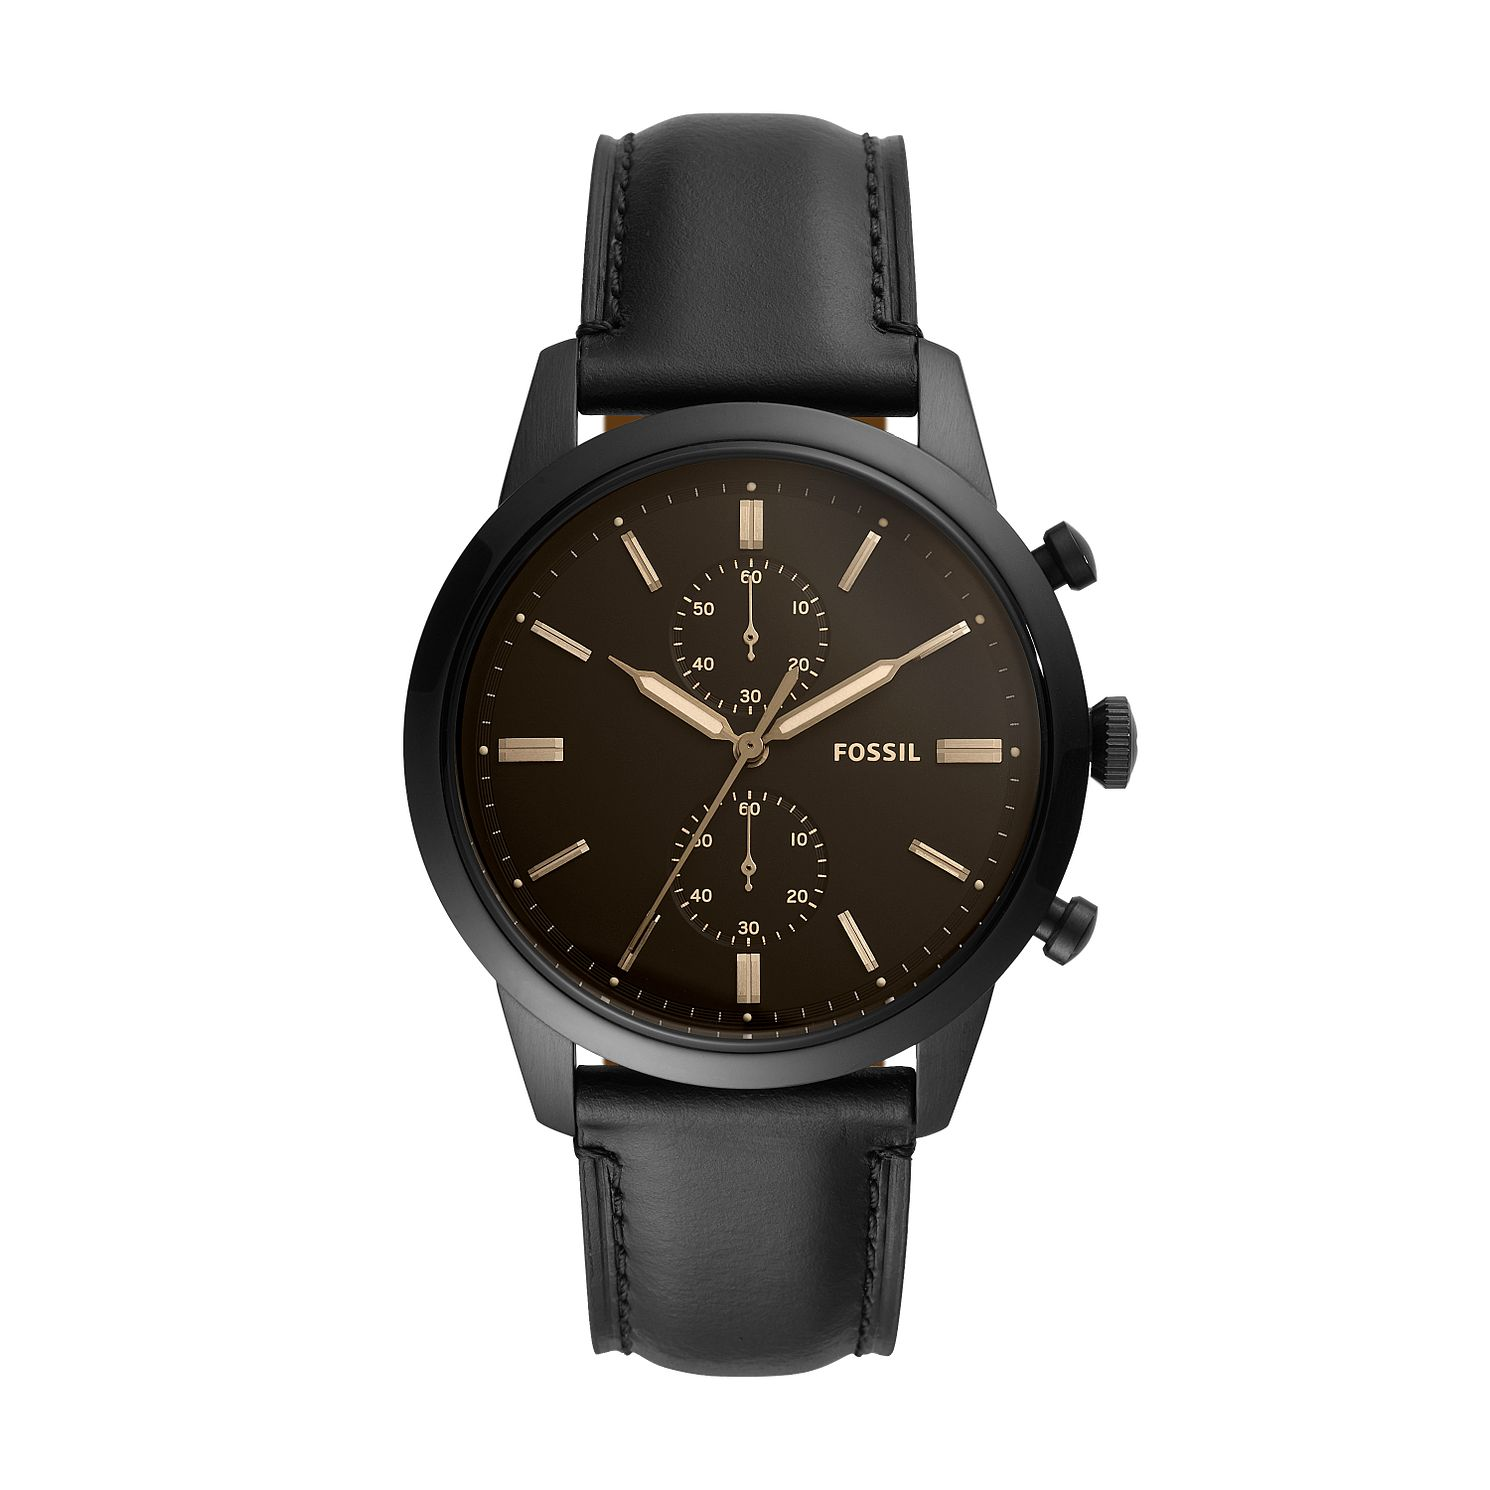 Fossil Townsman Chronograph Men's Black Leather Strap Watch - Product number 5326494